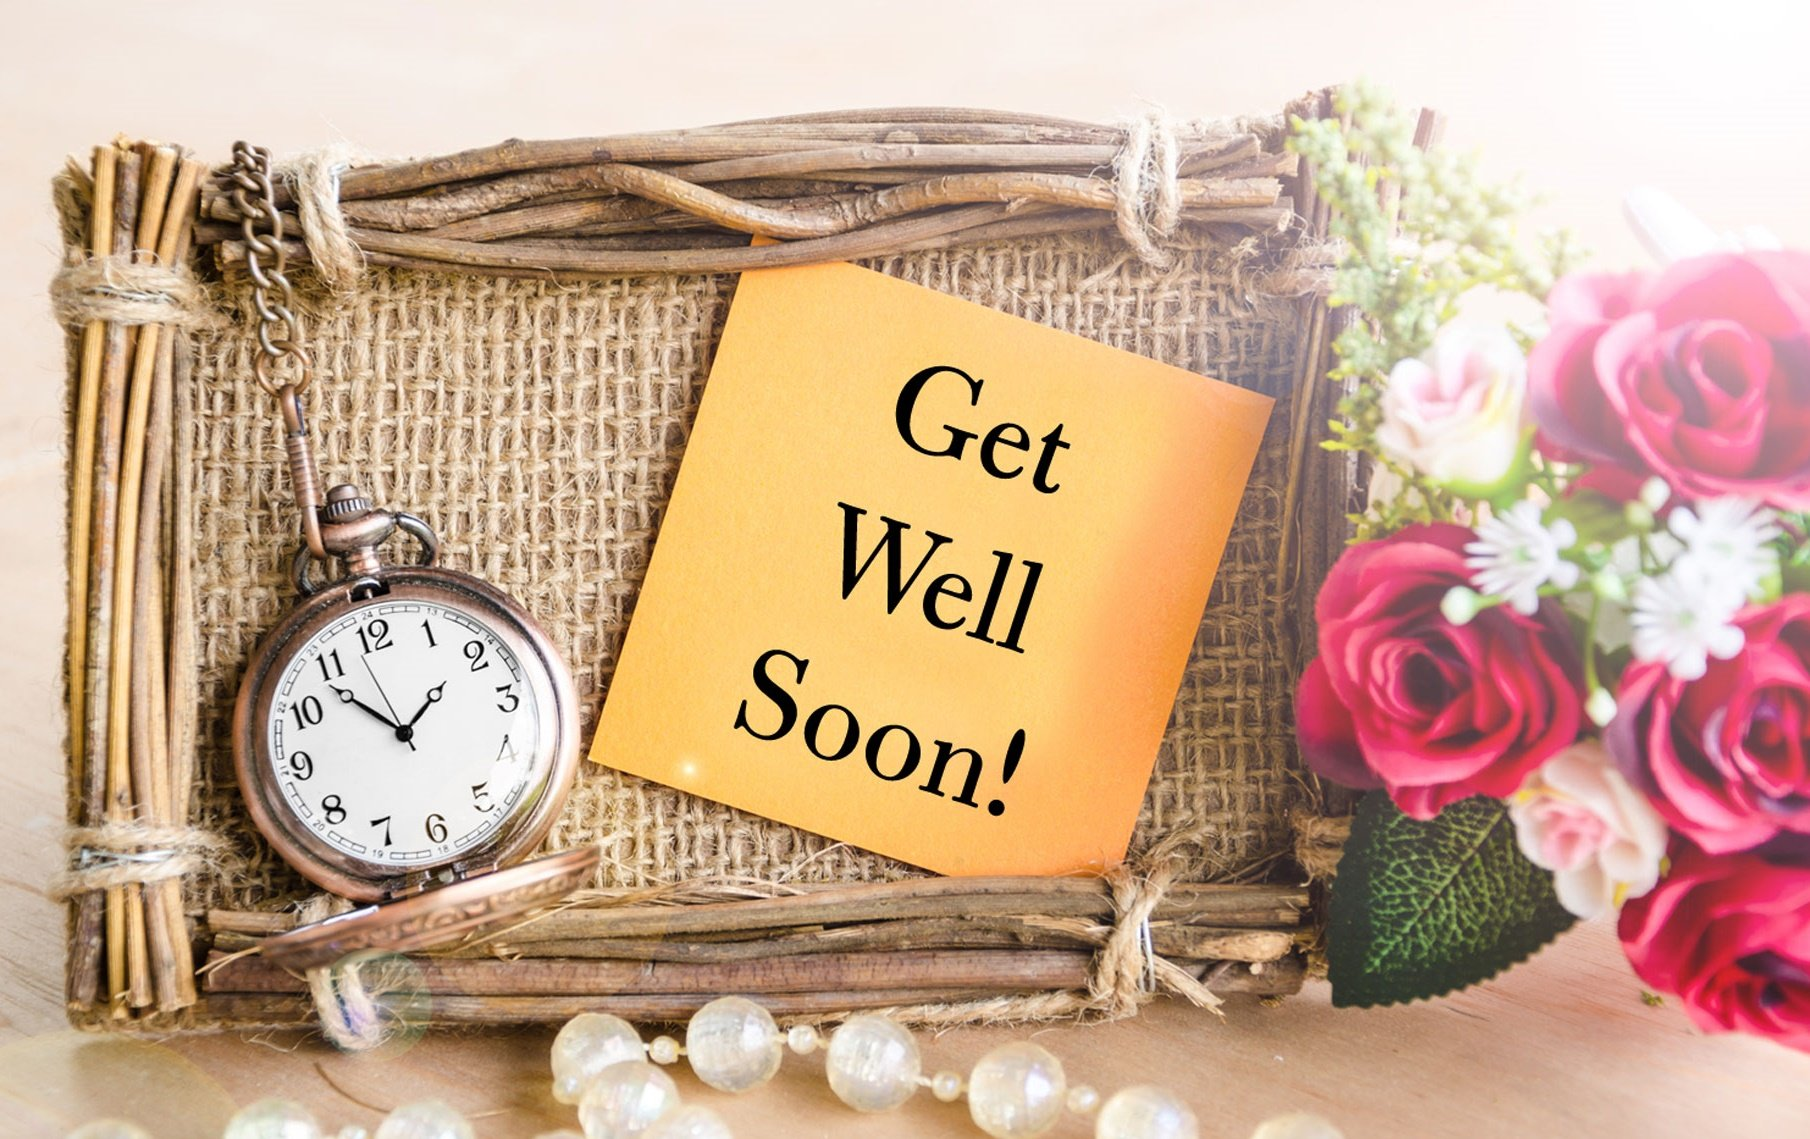 Get Well Soon Wishes For Mother